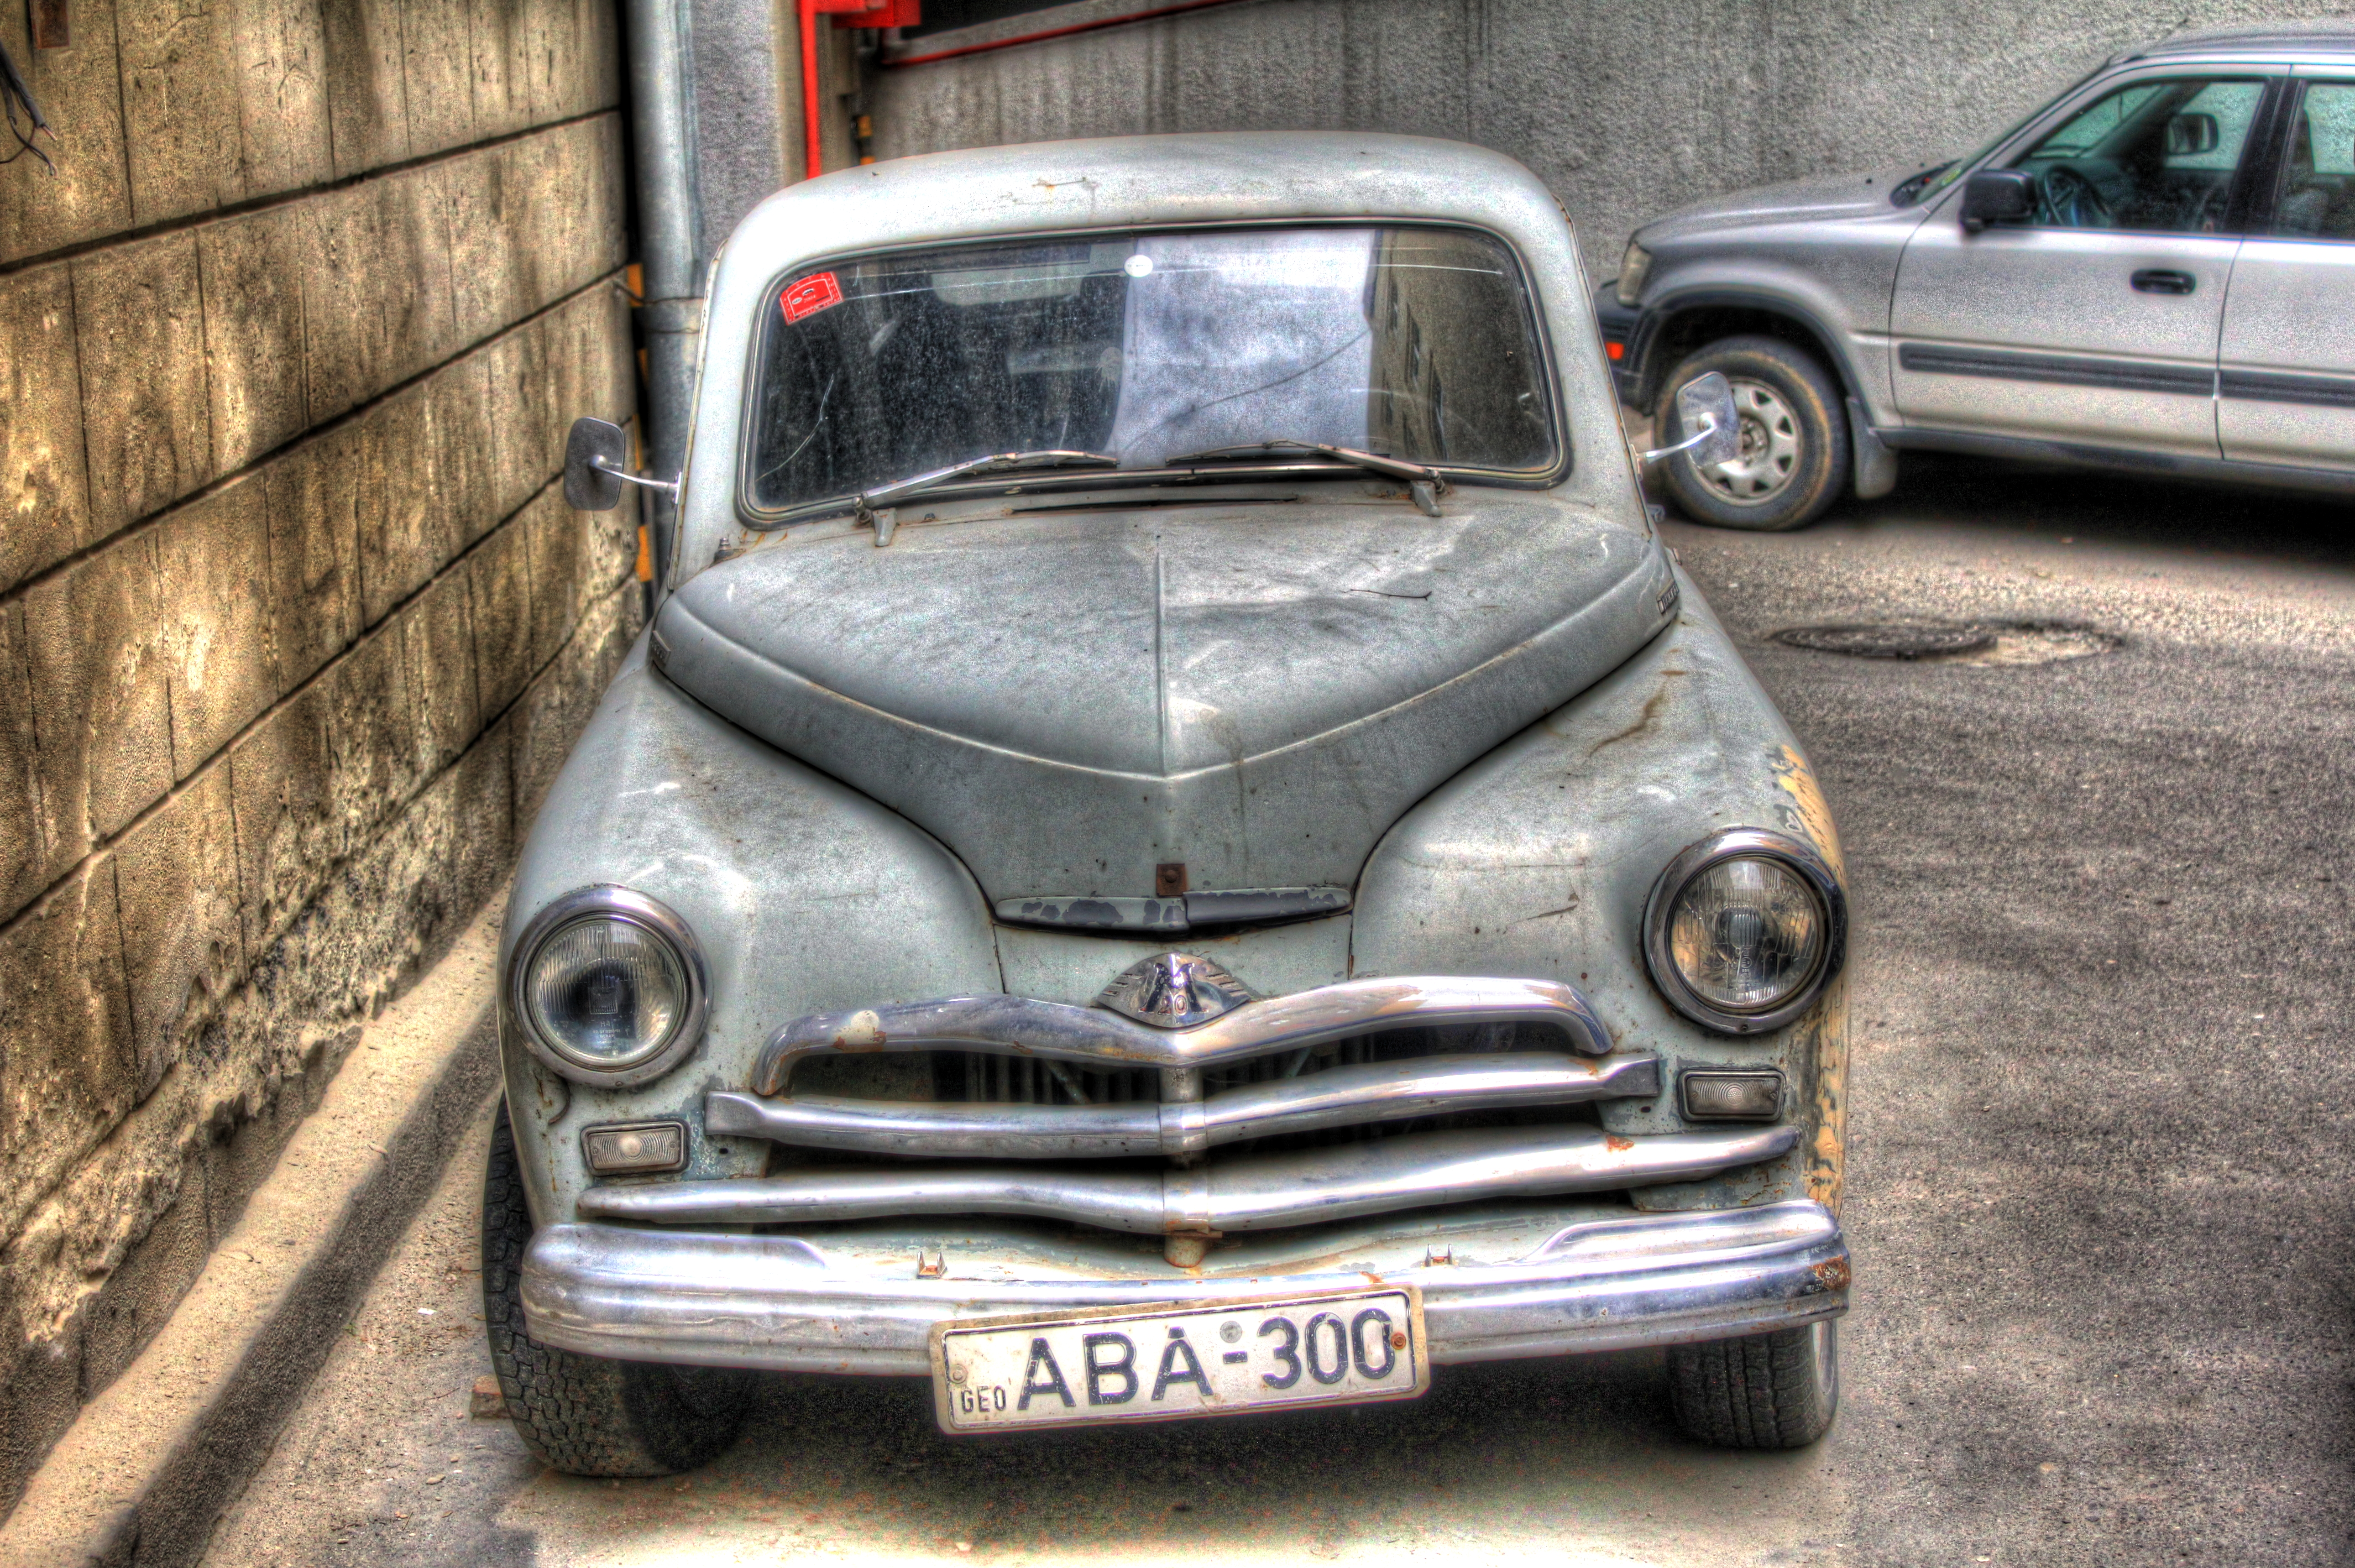 Tbilisi Old Car | HDR creme